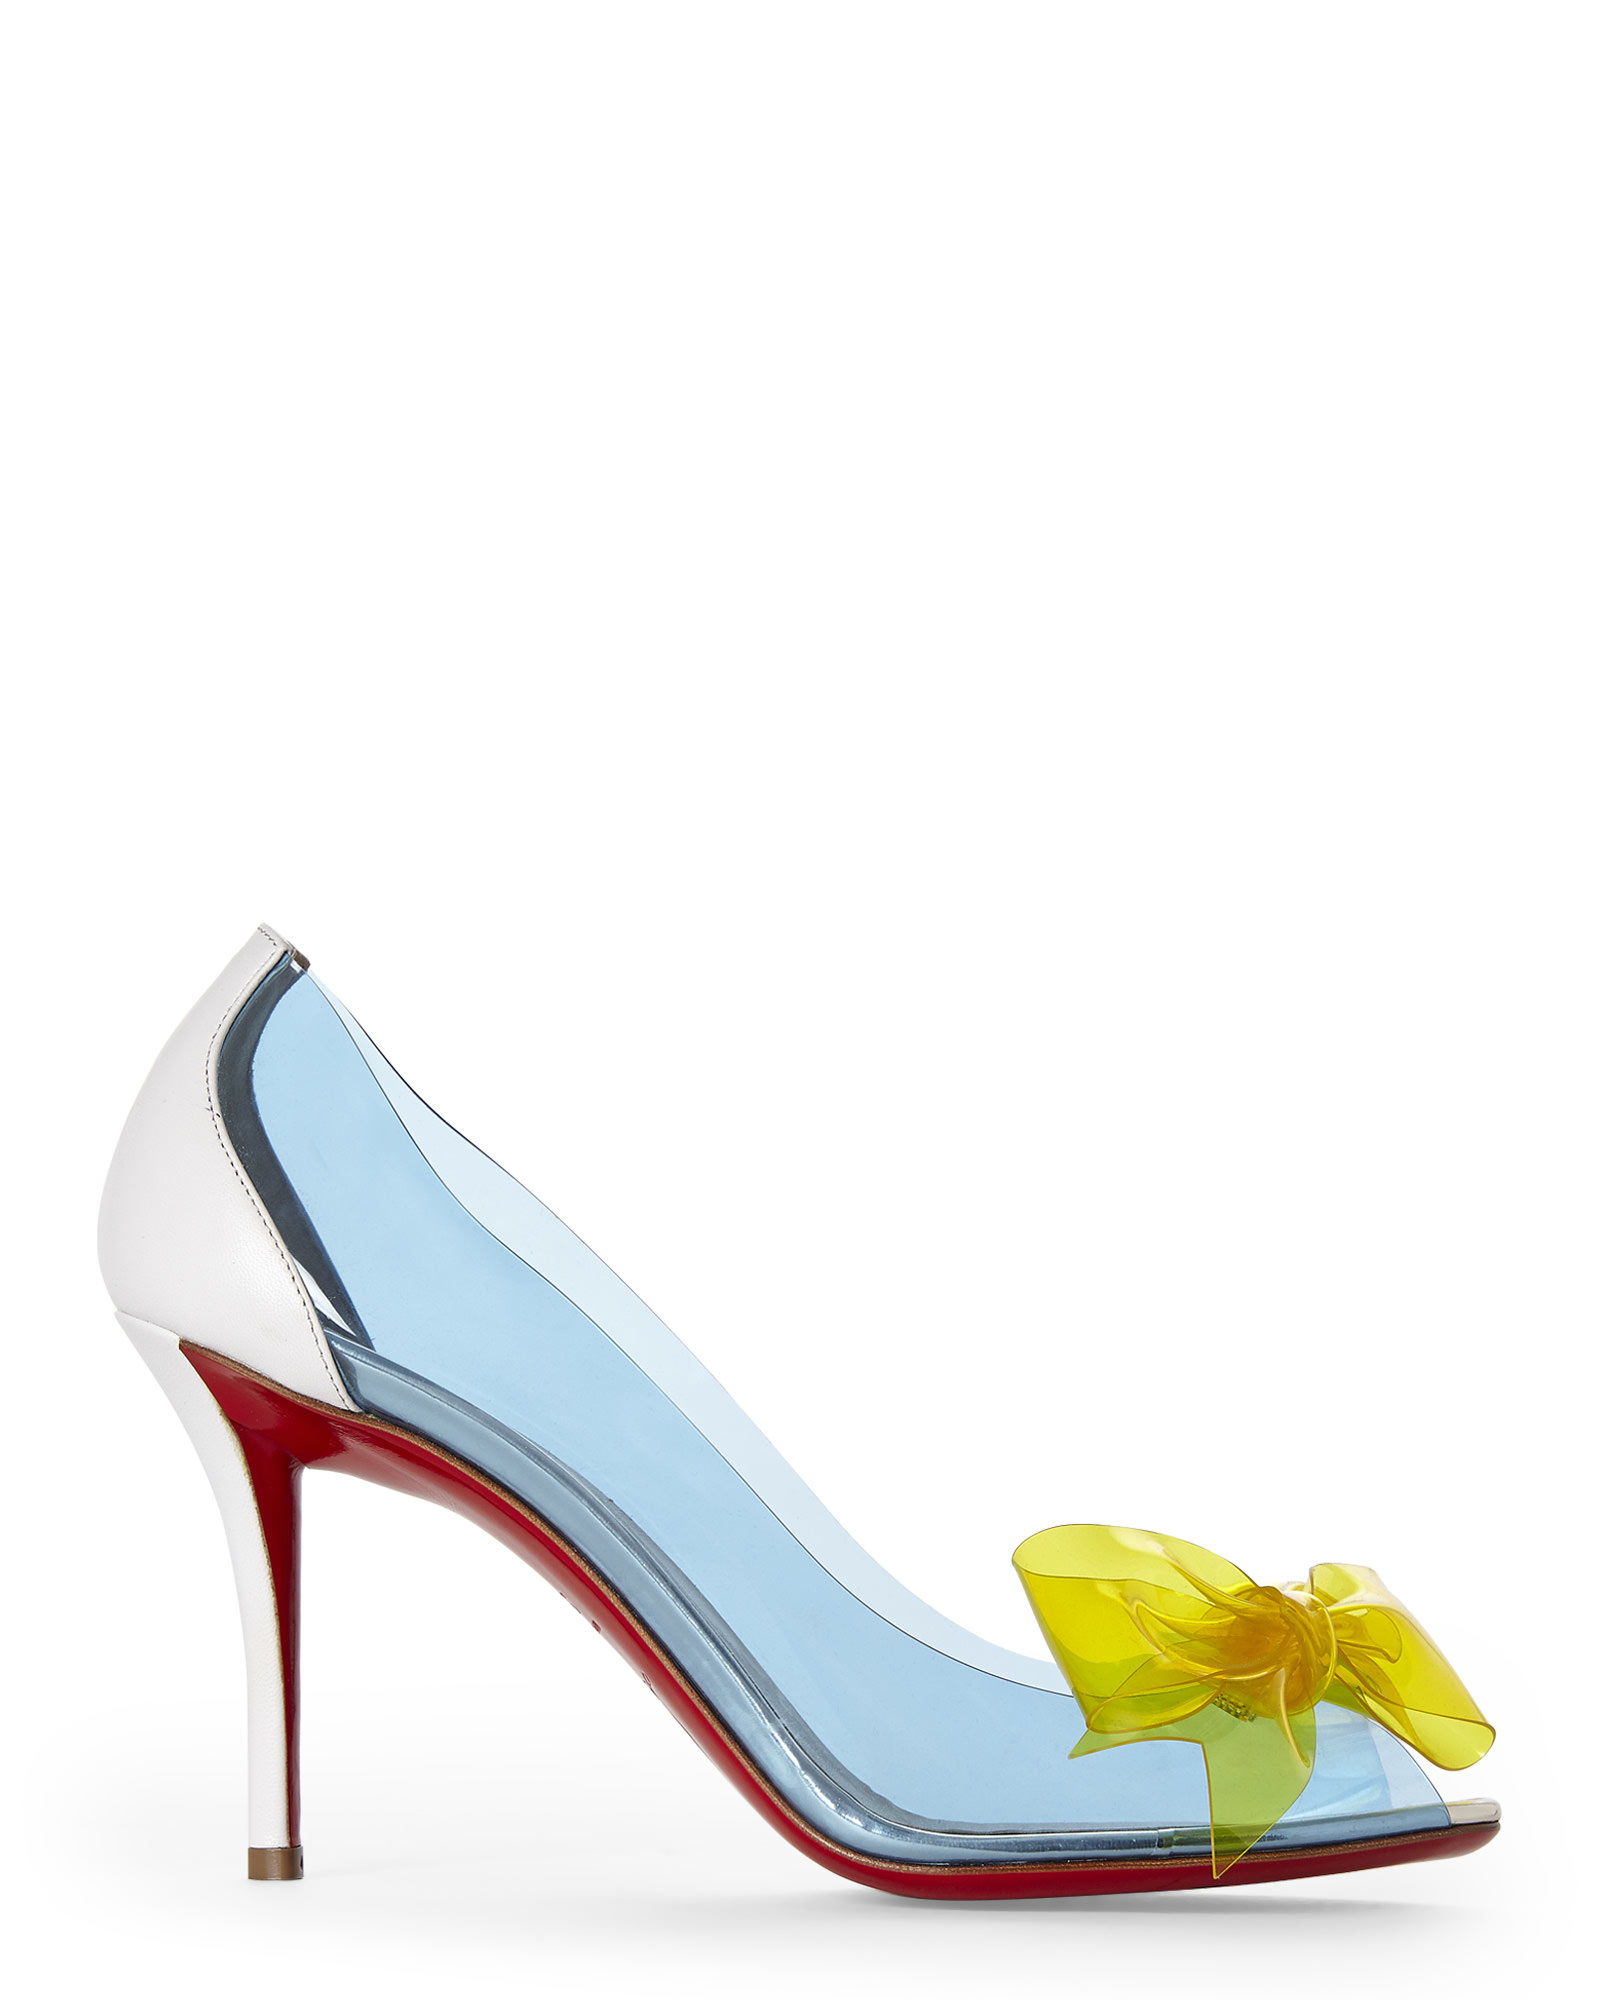 30864902c3f Lyst - Christian Louboutin Blue   Yellow Pvc Bow Pumps